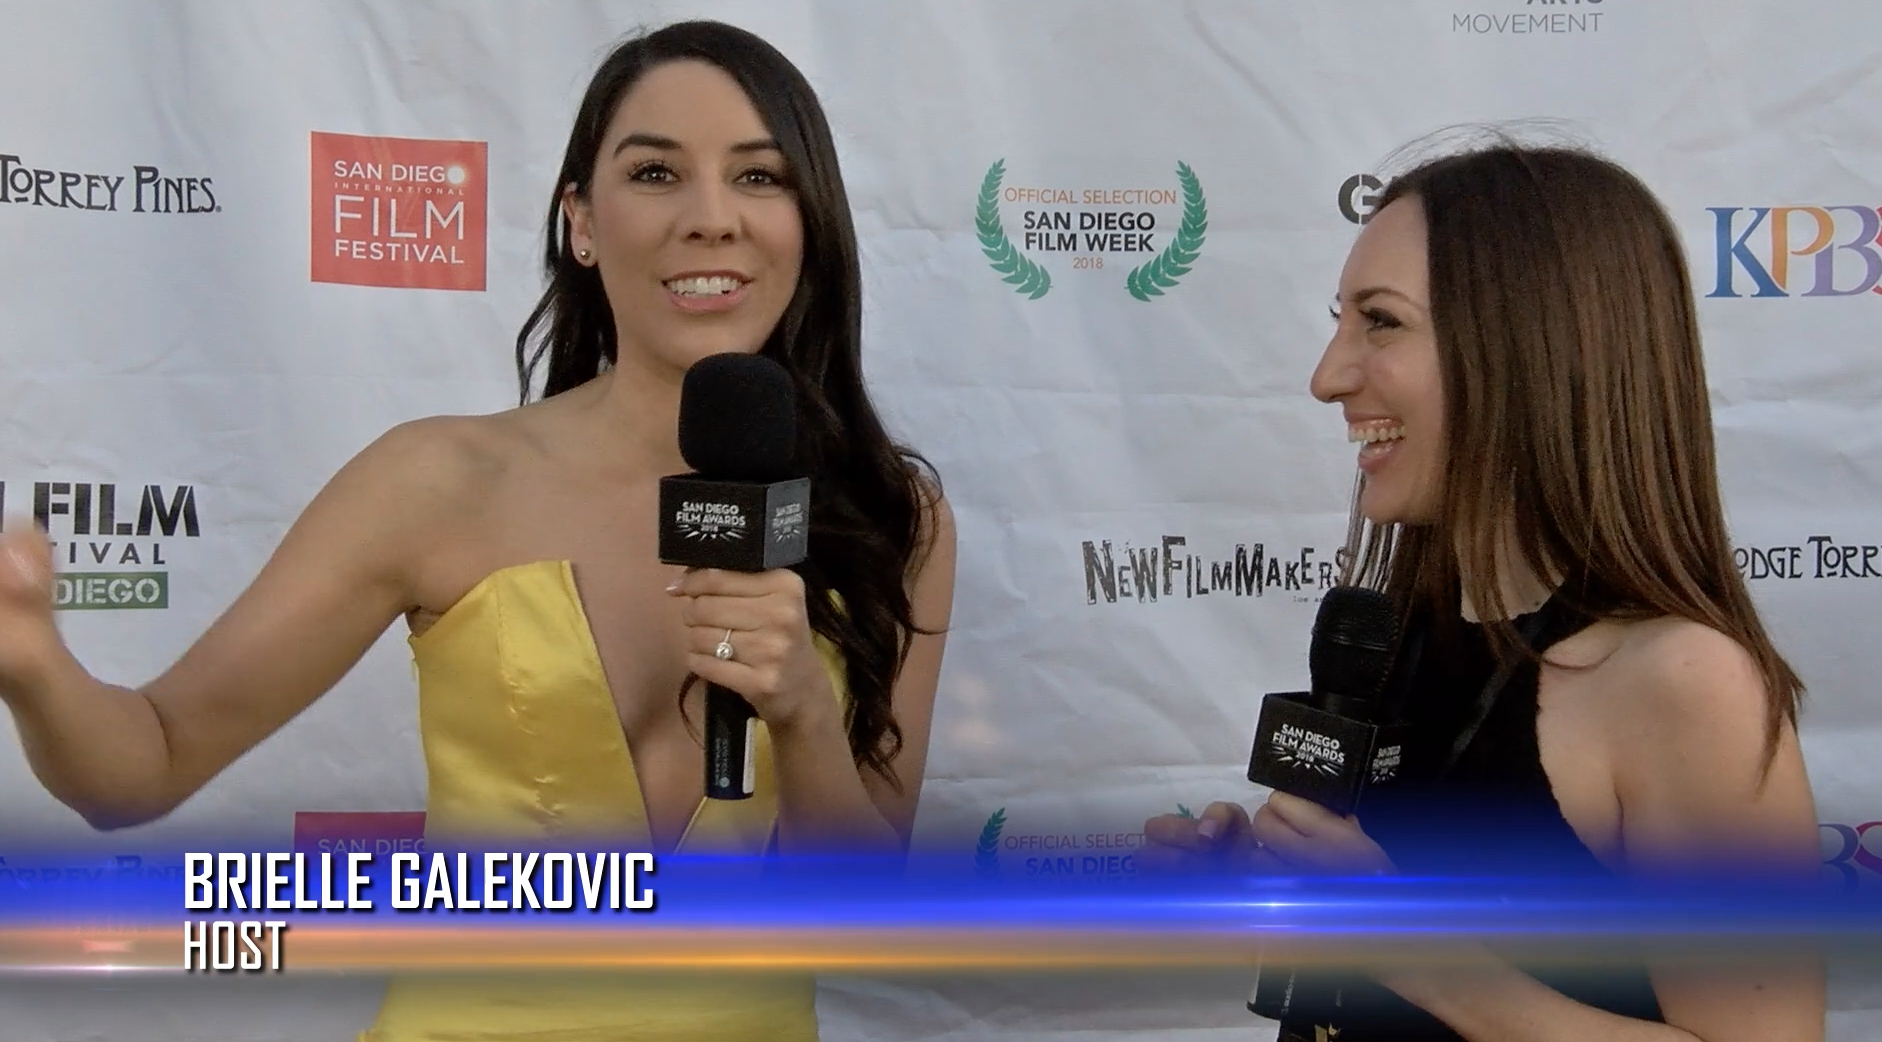 Brielle Galekovic and Erika De La Cruz at San Diego Film Awards